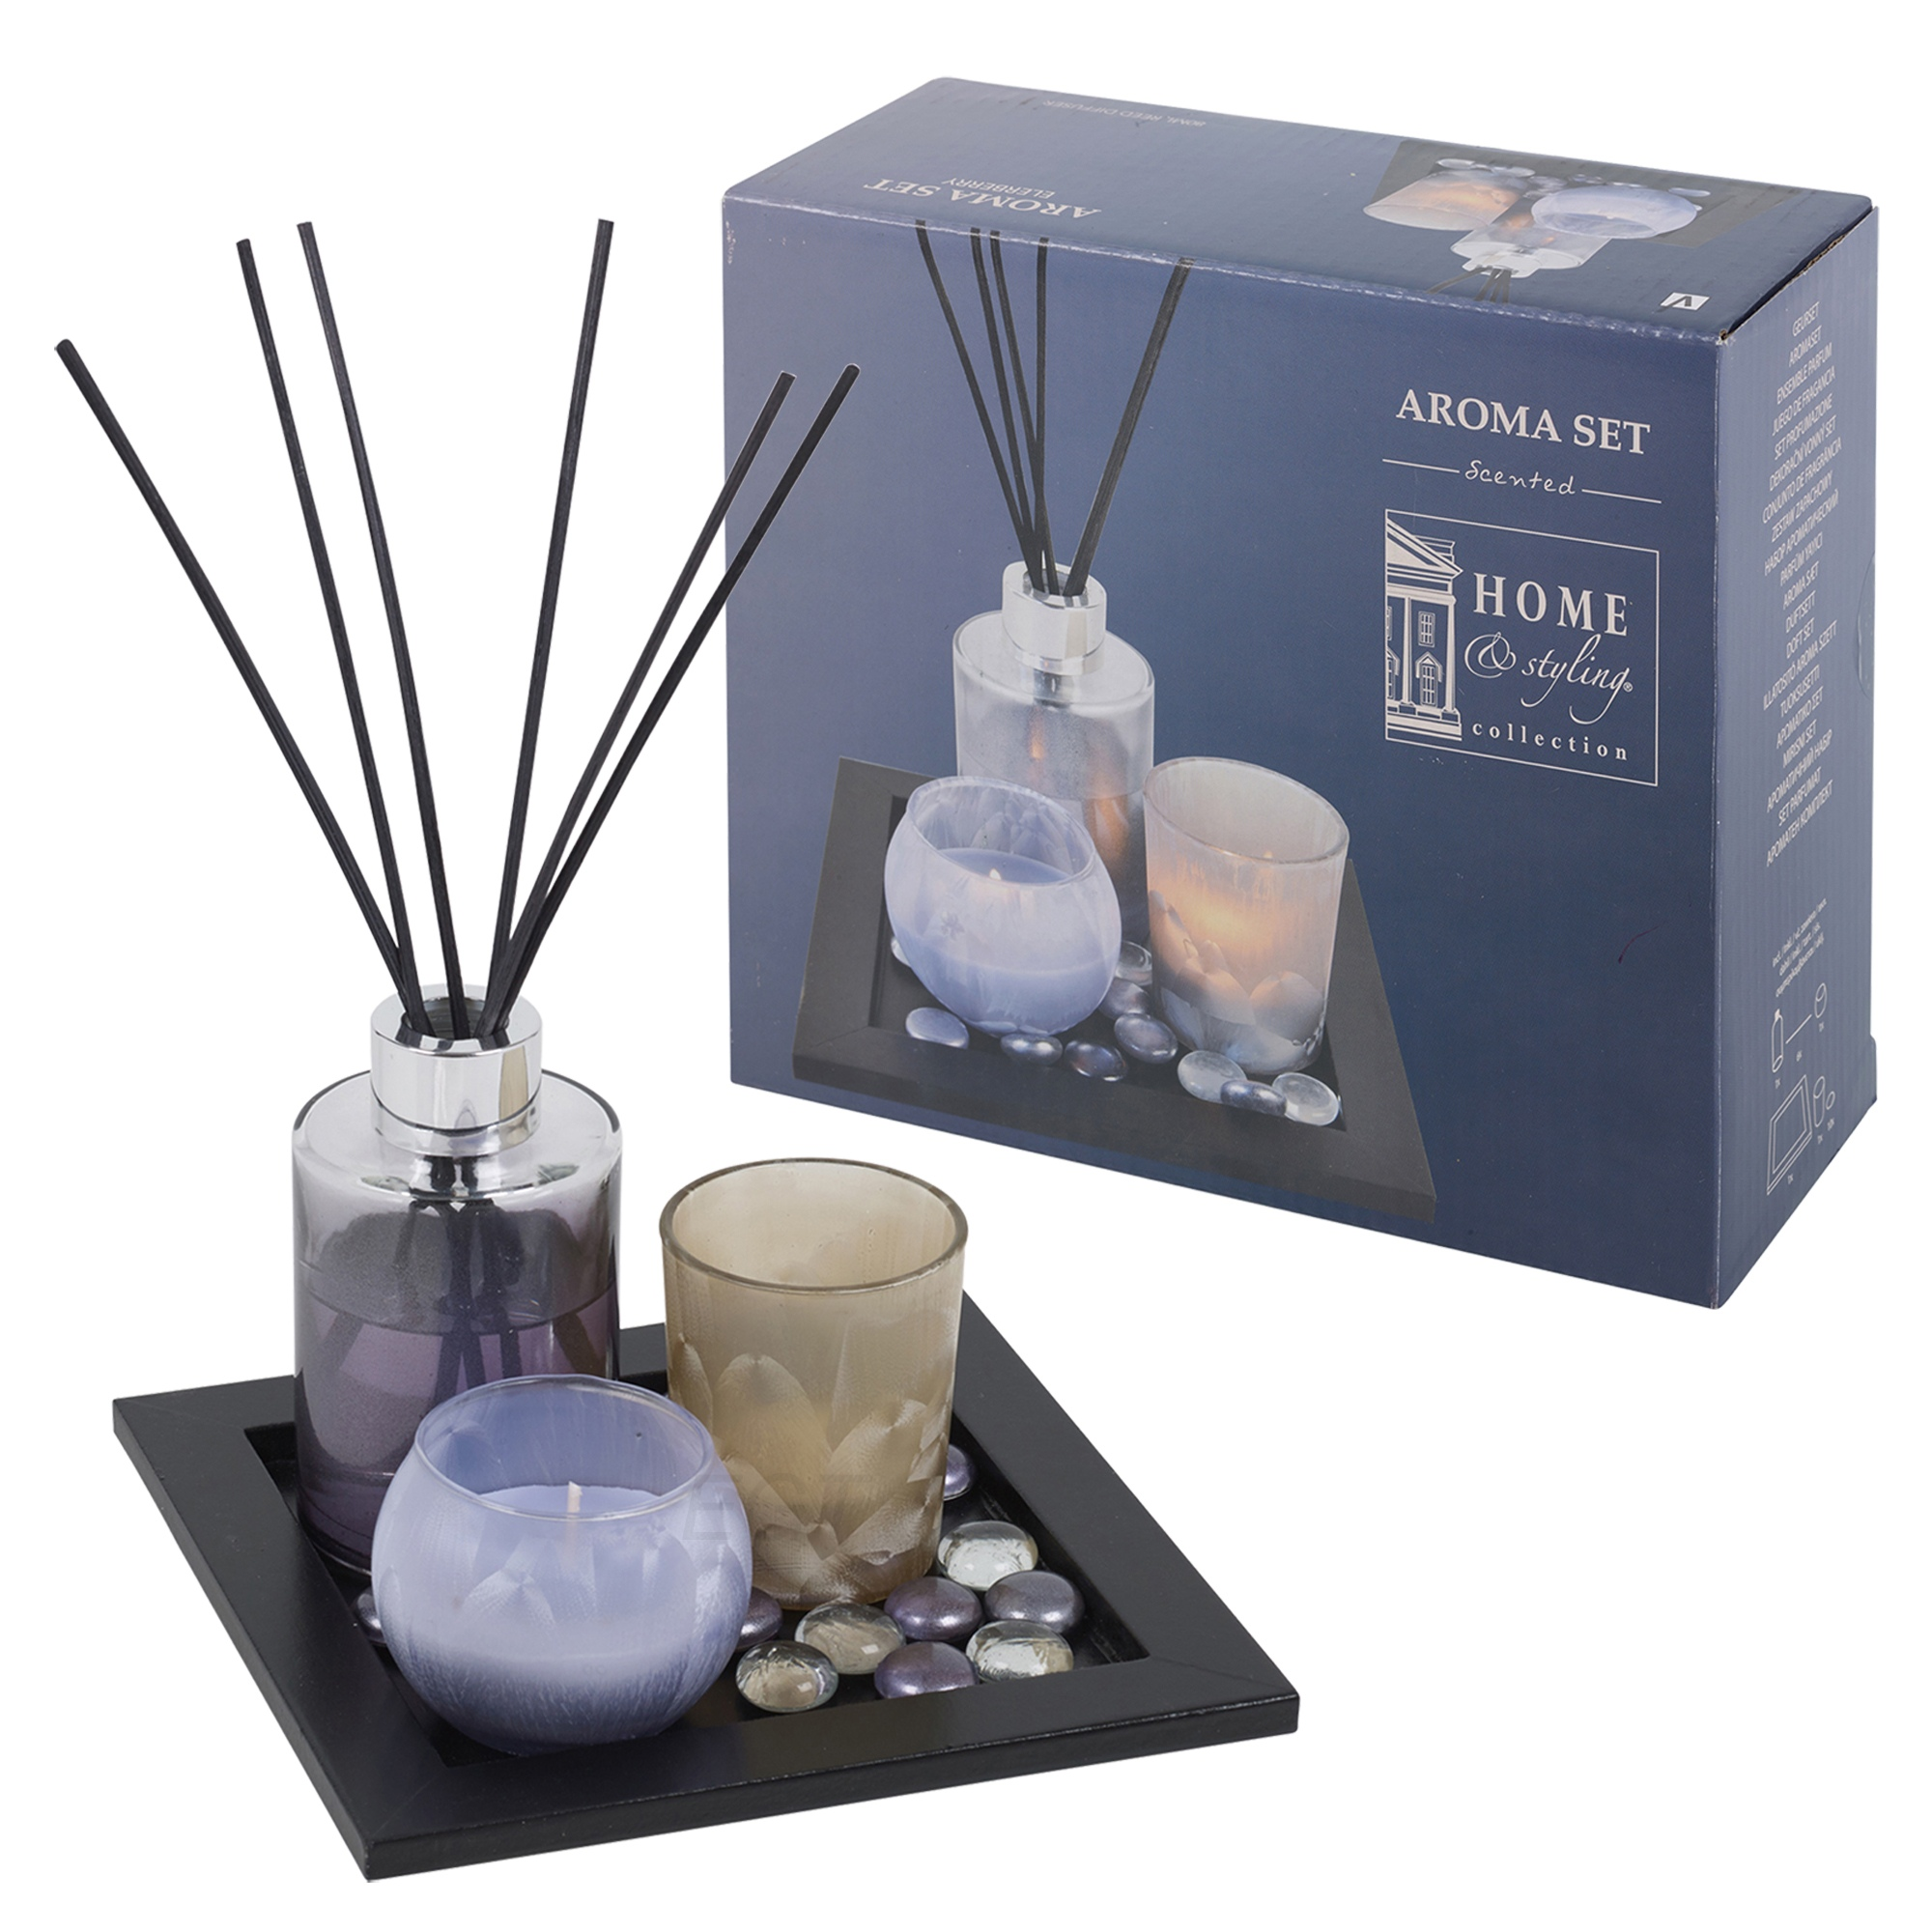 #7C684F Perfume Reed Diffuser & Scented Tealight Candle Tray Aroma  Most Effective 1175 Aromatherapy Diffuser Set pictures with 2000x2000 px on helpvideos.info - Air Conditioners, Air Coolers and more